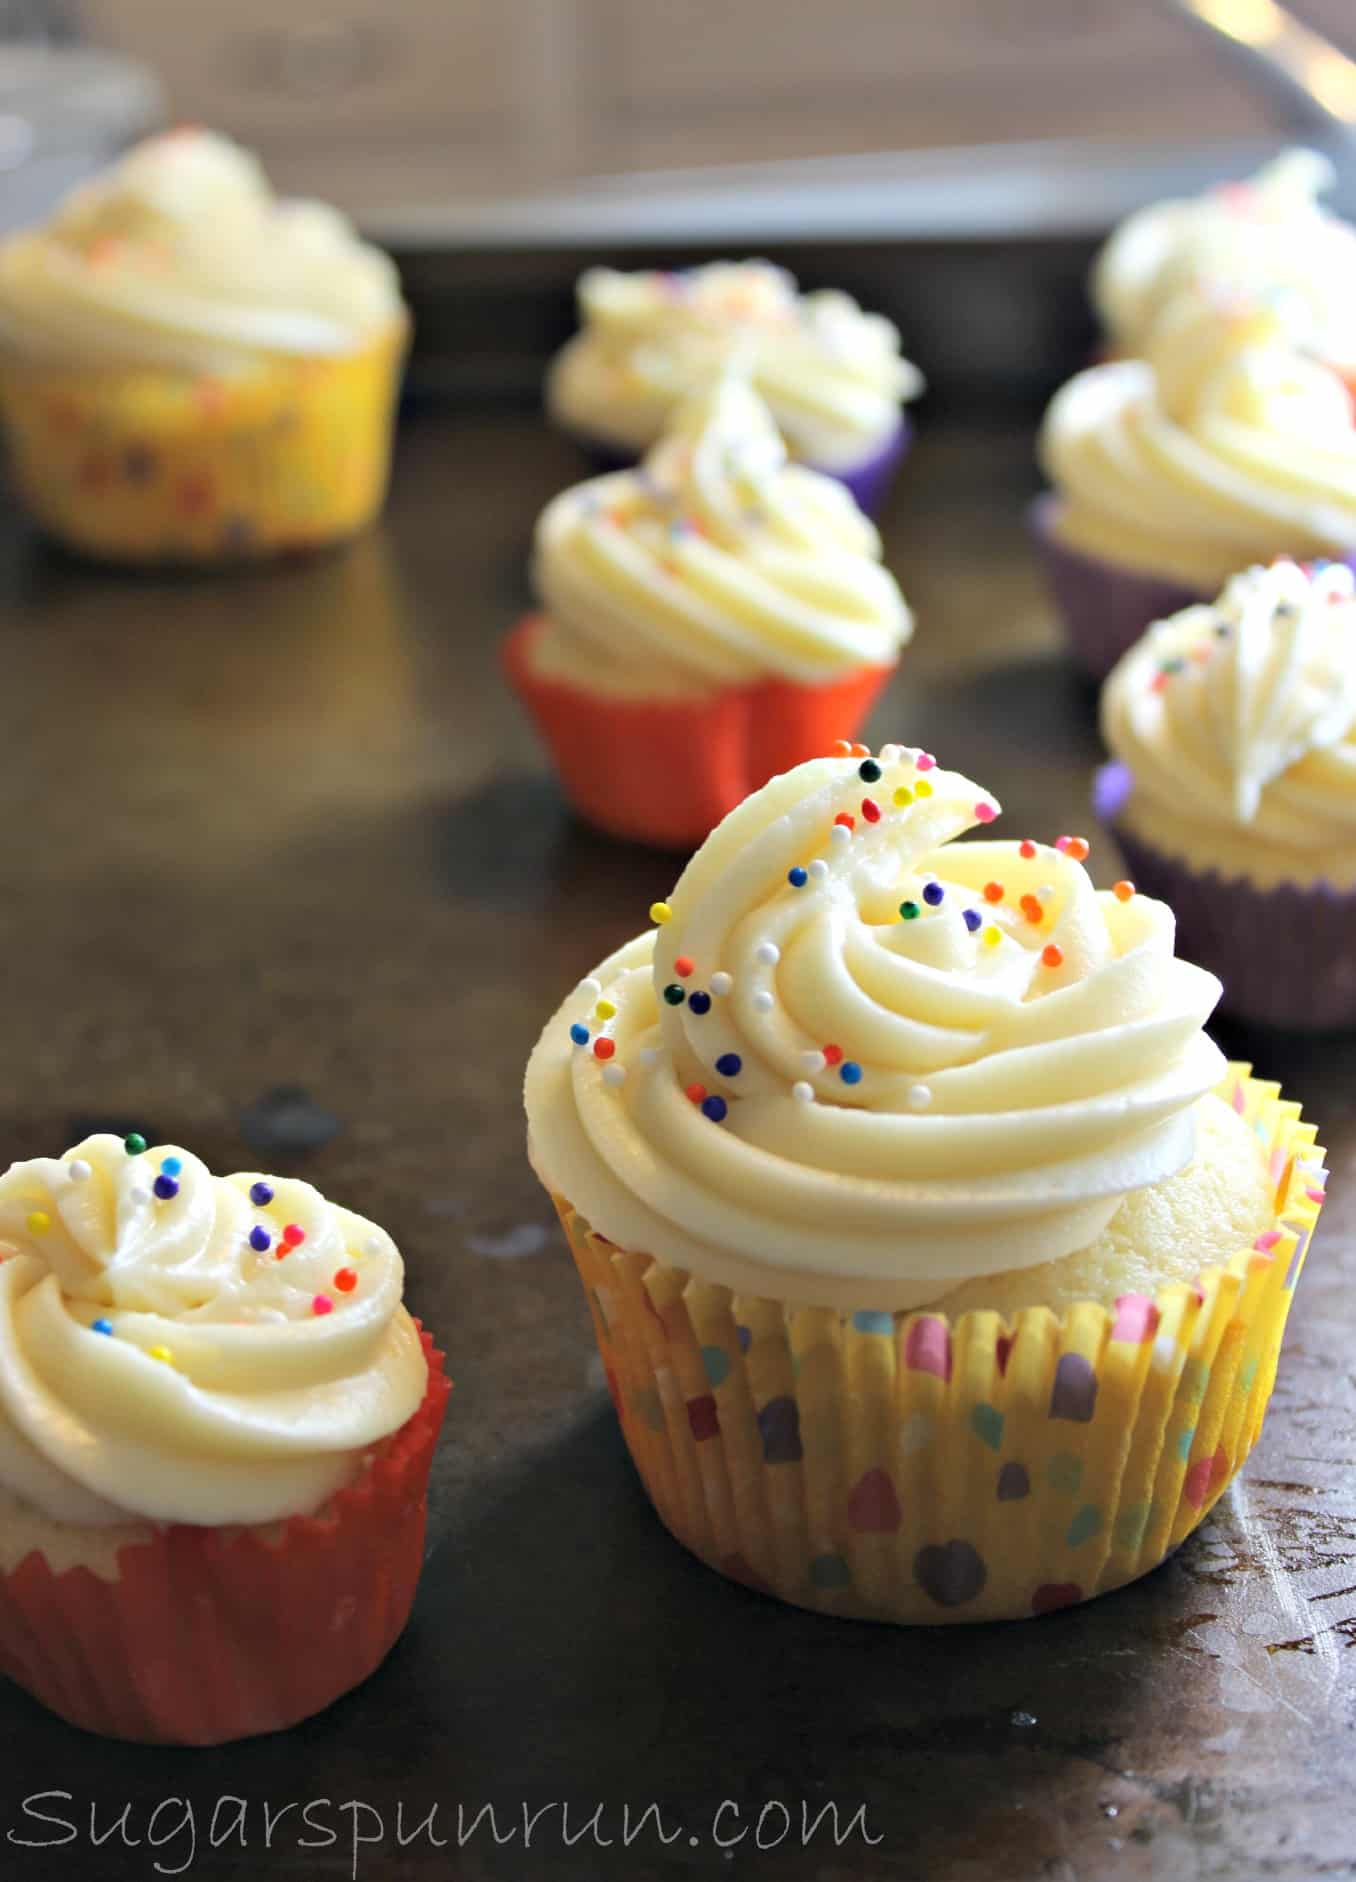 Perfect Homemade Vanilla Cupcakes With Caramel Flavored Icing